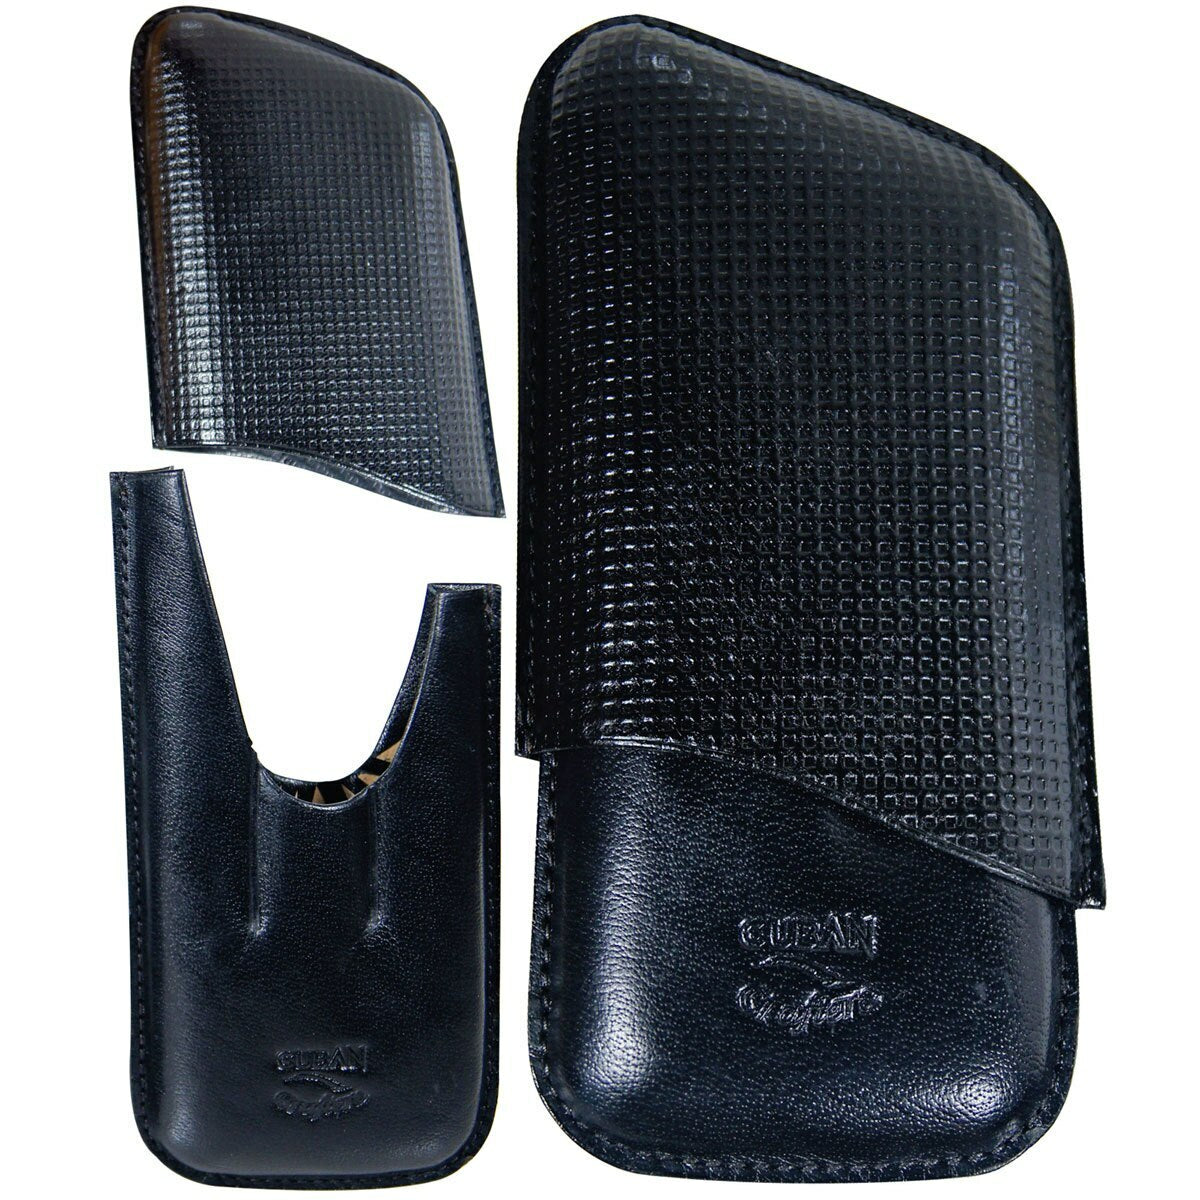 Combo Perfect Cigar Accessories II (Leather Case, Ashtray, Torch, Cutter) - Cigar boulevard